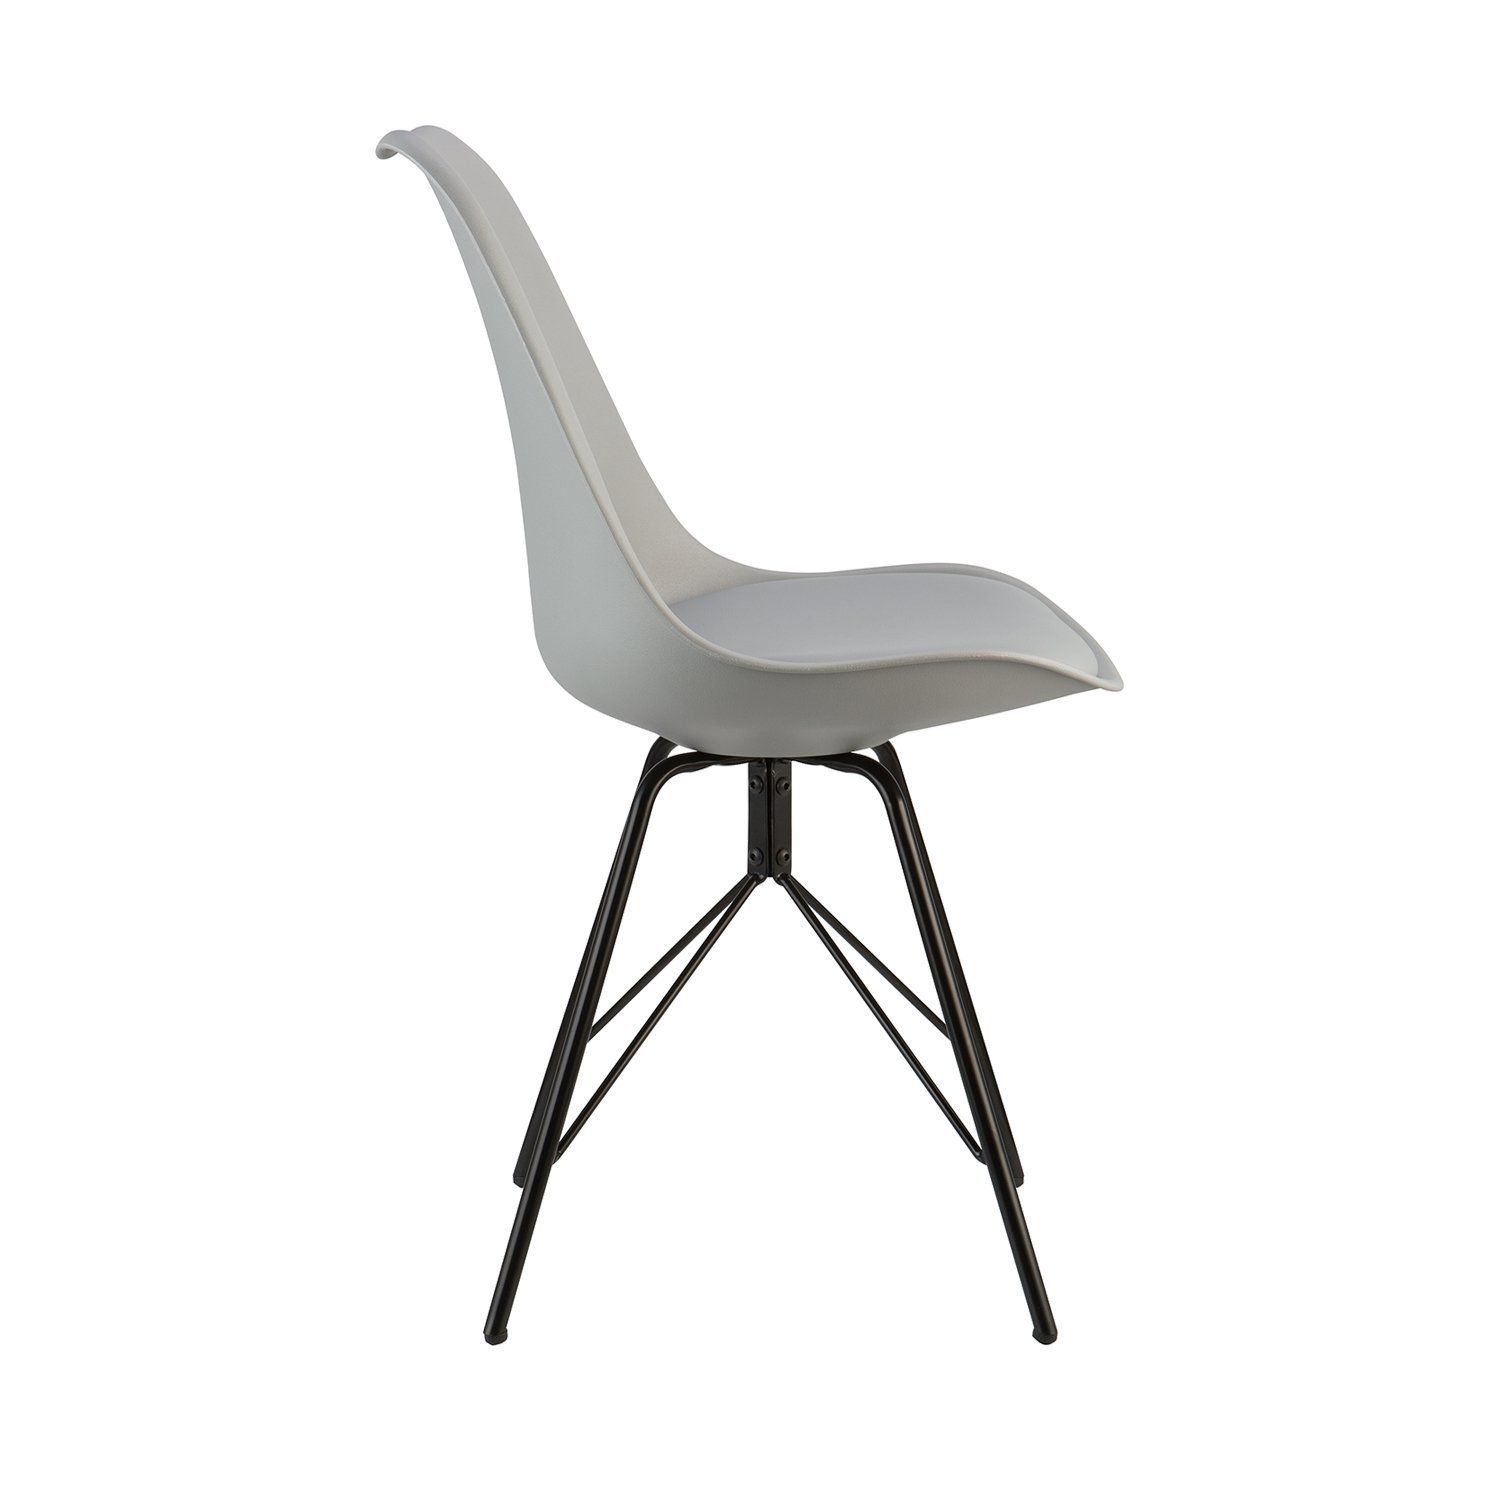 Polorim Grey Chair Dining Chair Kitchen Furniture Bedroom Living